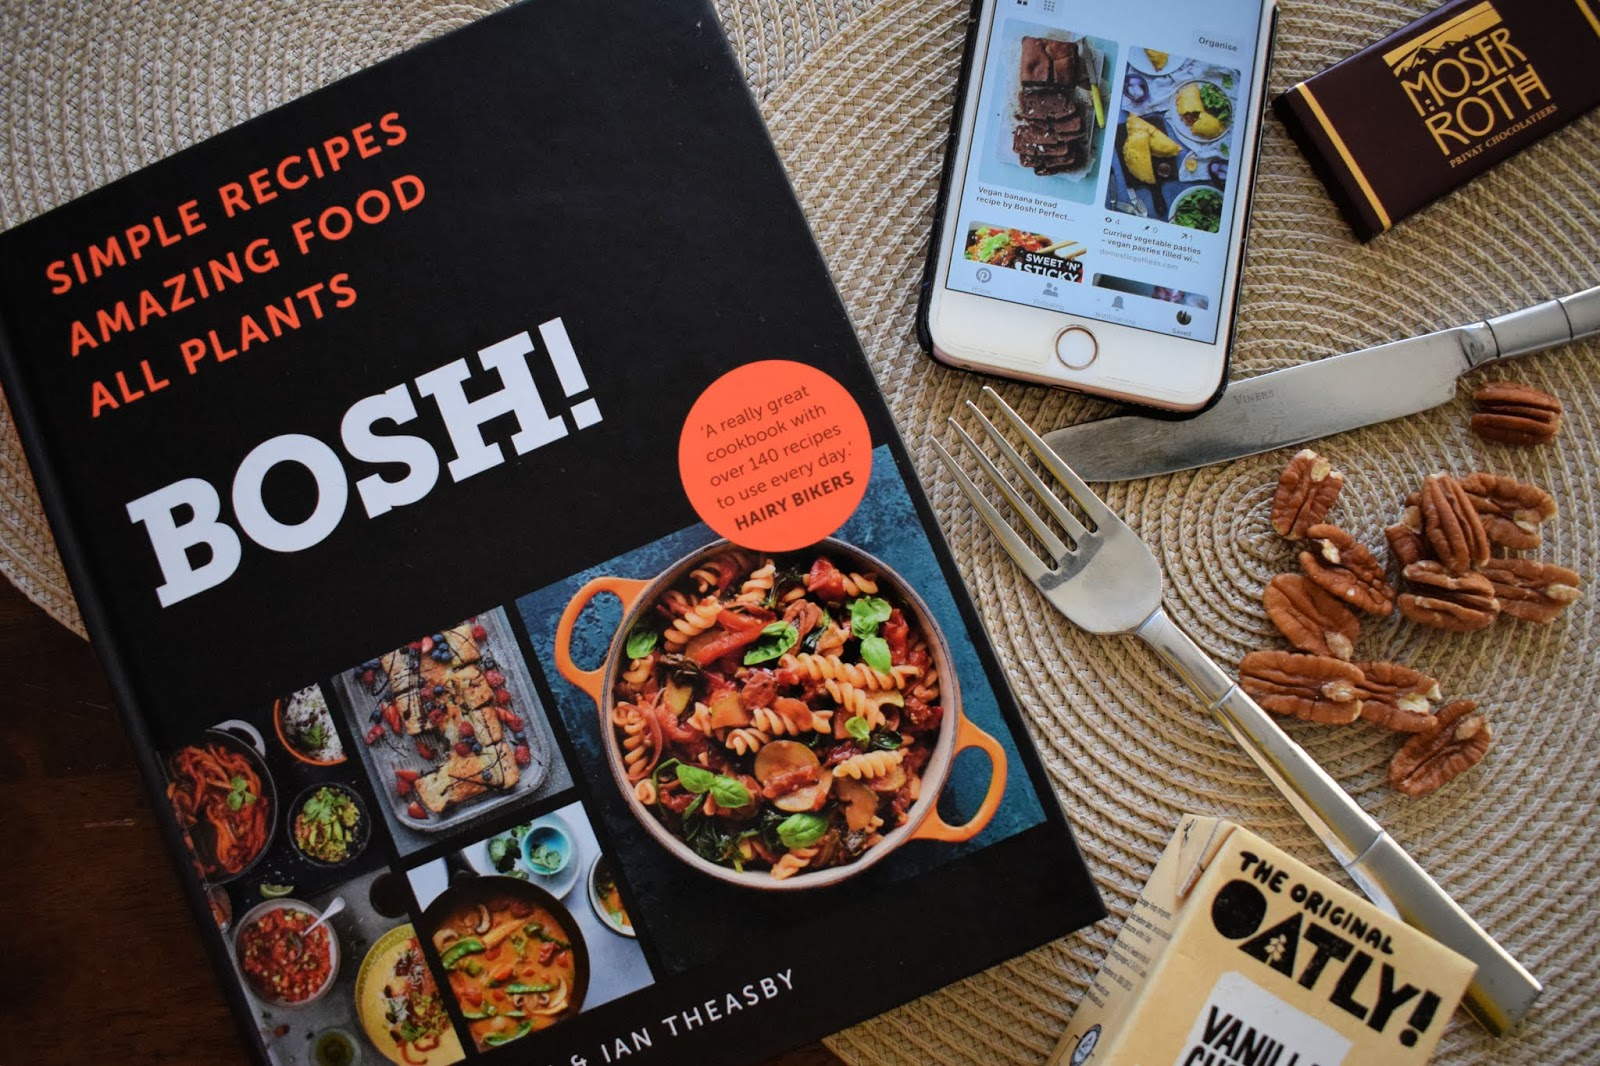 Bosh Vegan recipe book